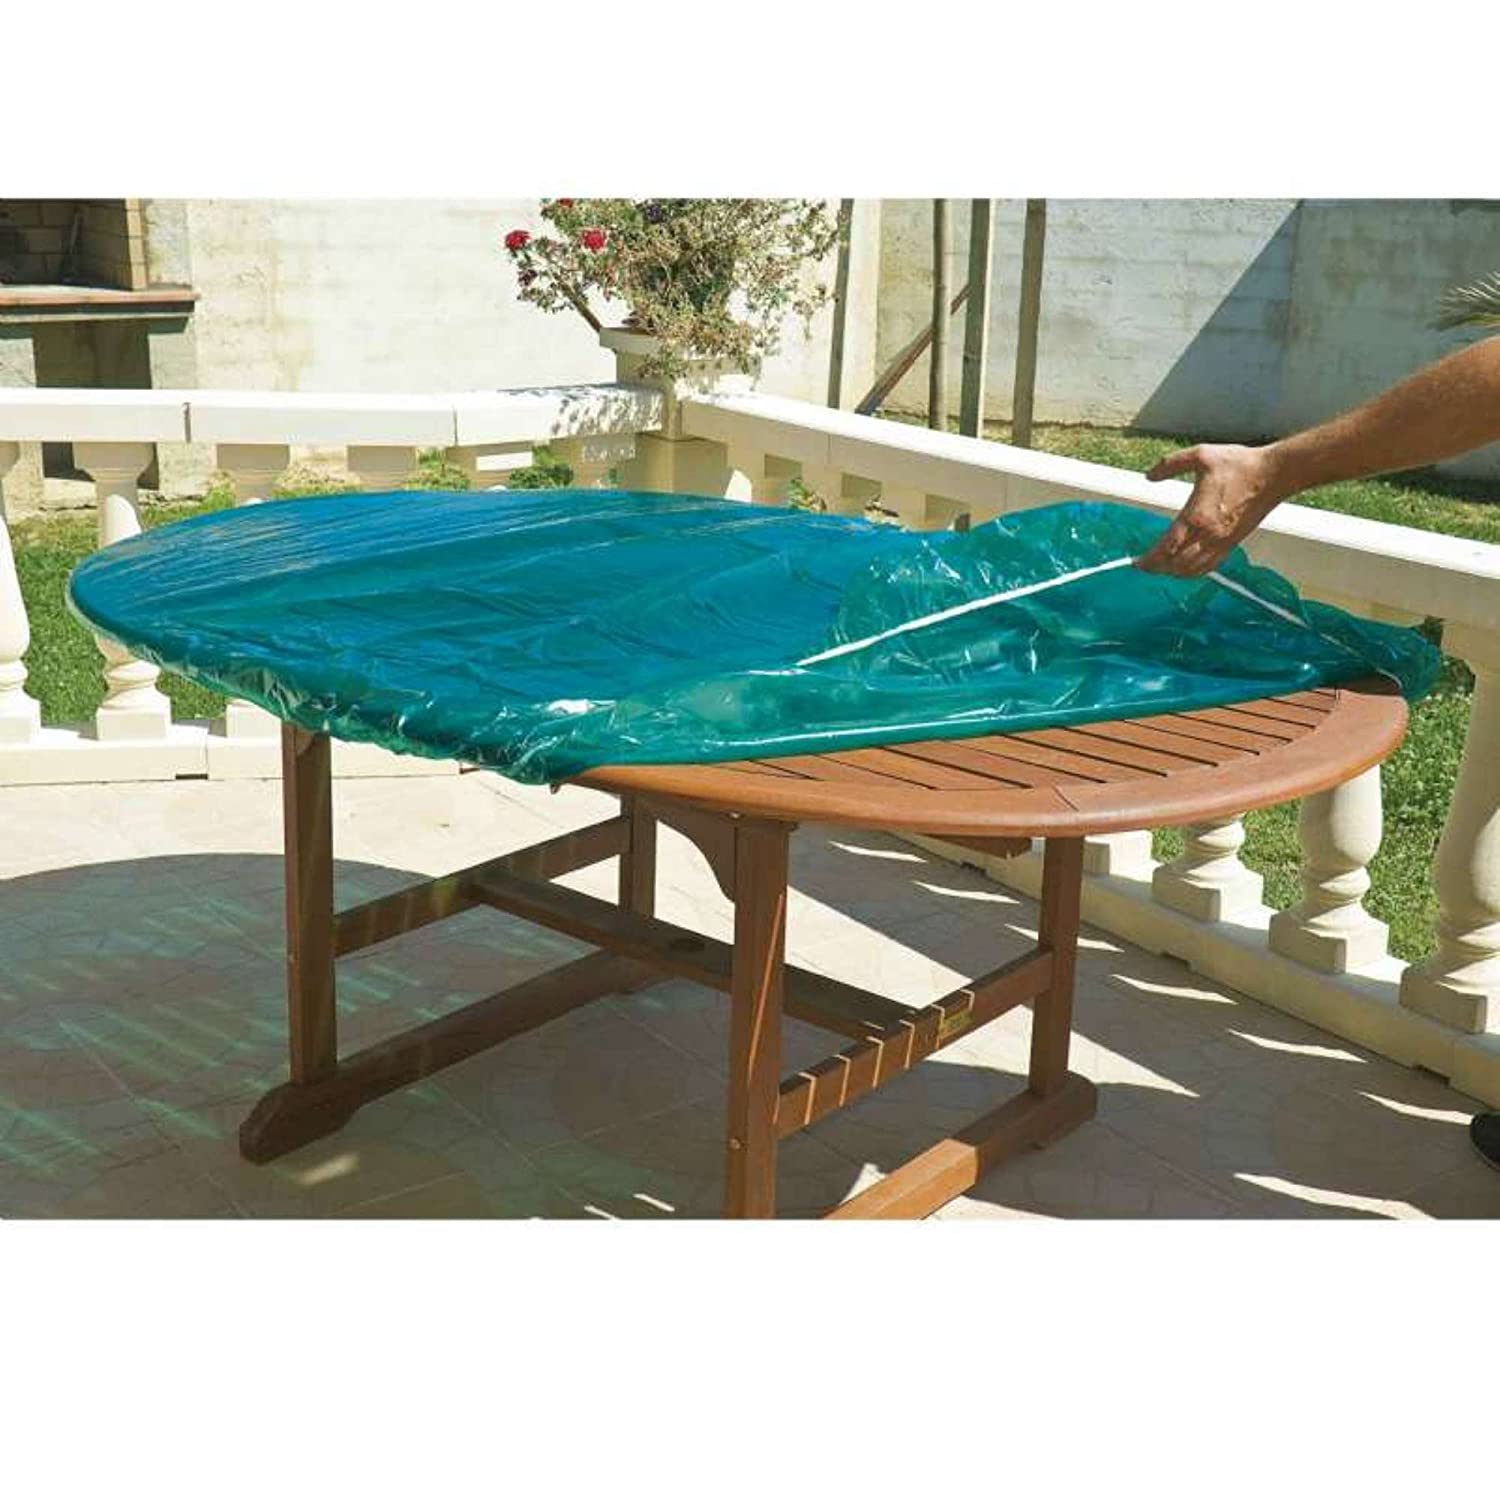 Maillessac 04808 Housse Luxe pour Table Ronde Vert 120 cm